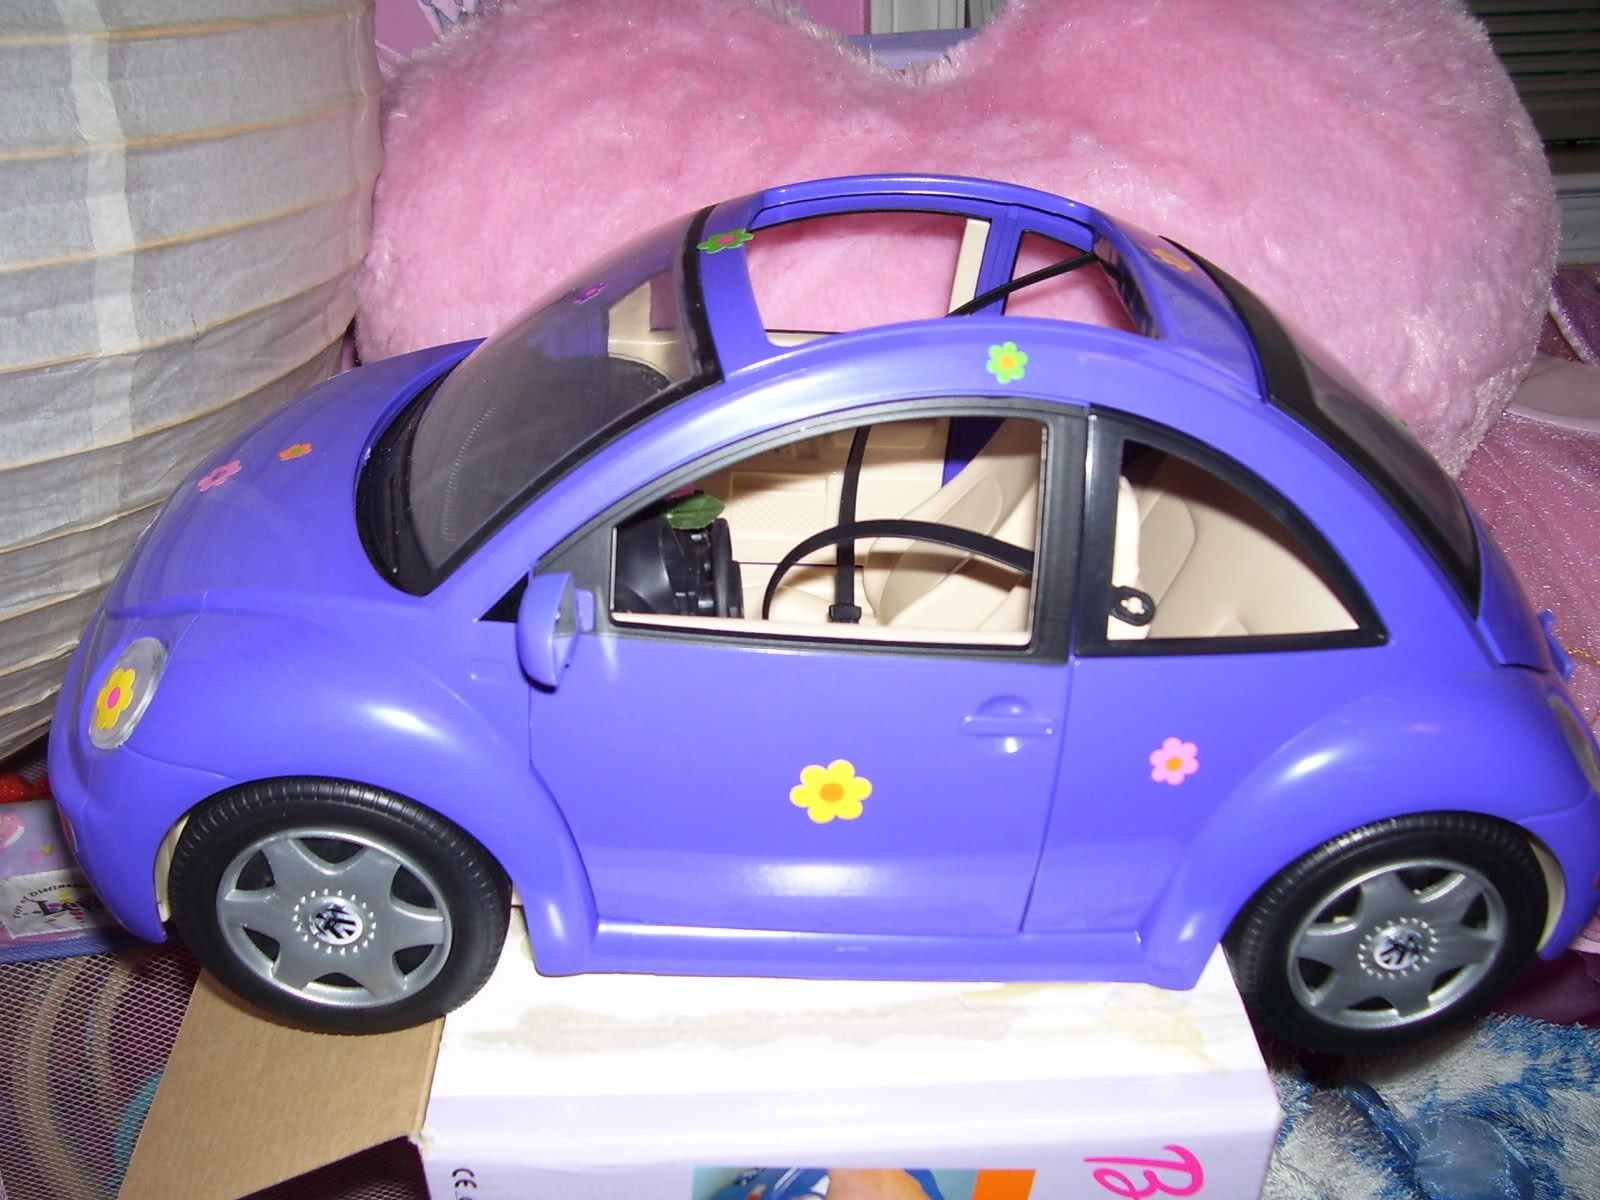 Barbie Purple Punch Buggy Cars Early 2000s Aesthetics Nostalgia